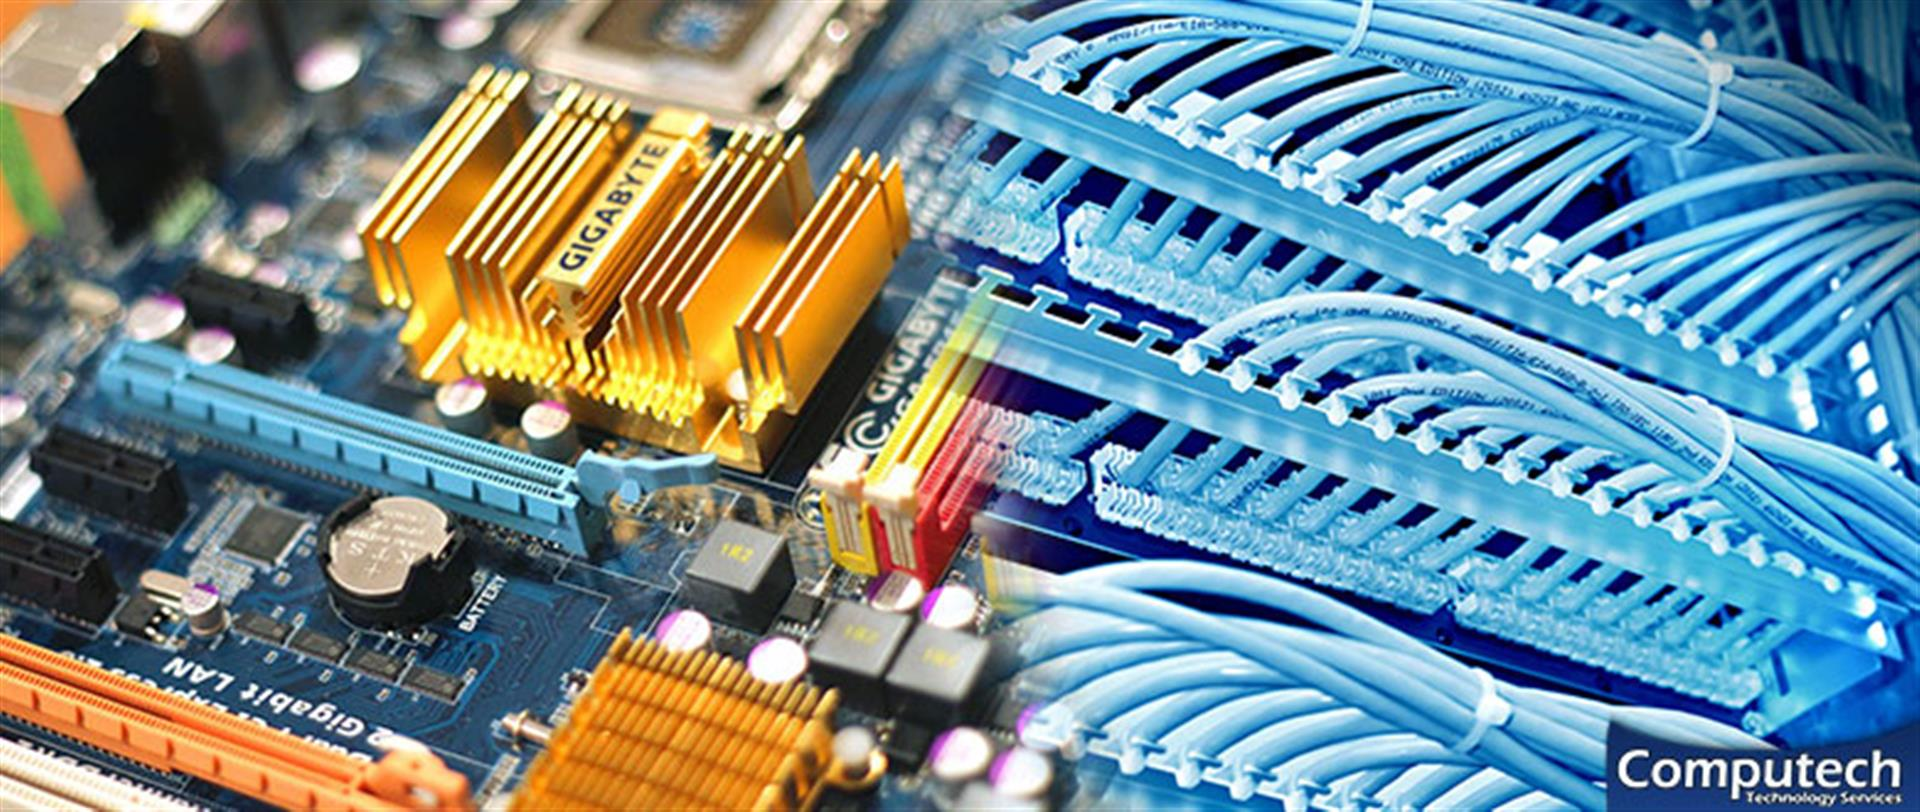 Auburn Alabama On Site PC & Printer Repair, Networking, Telecom & Data Cabling Solutions